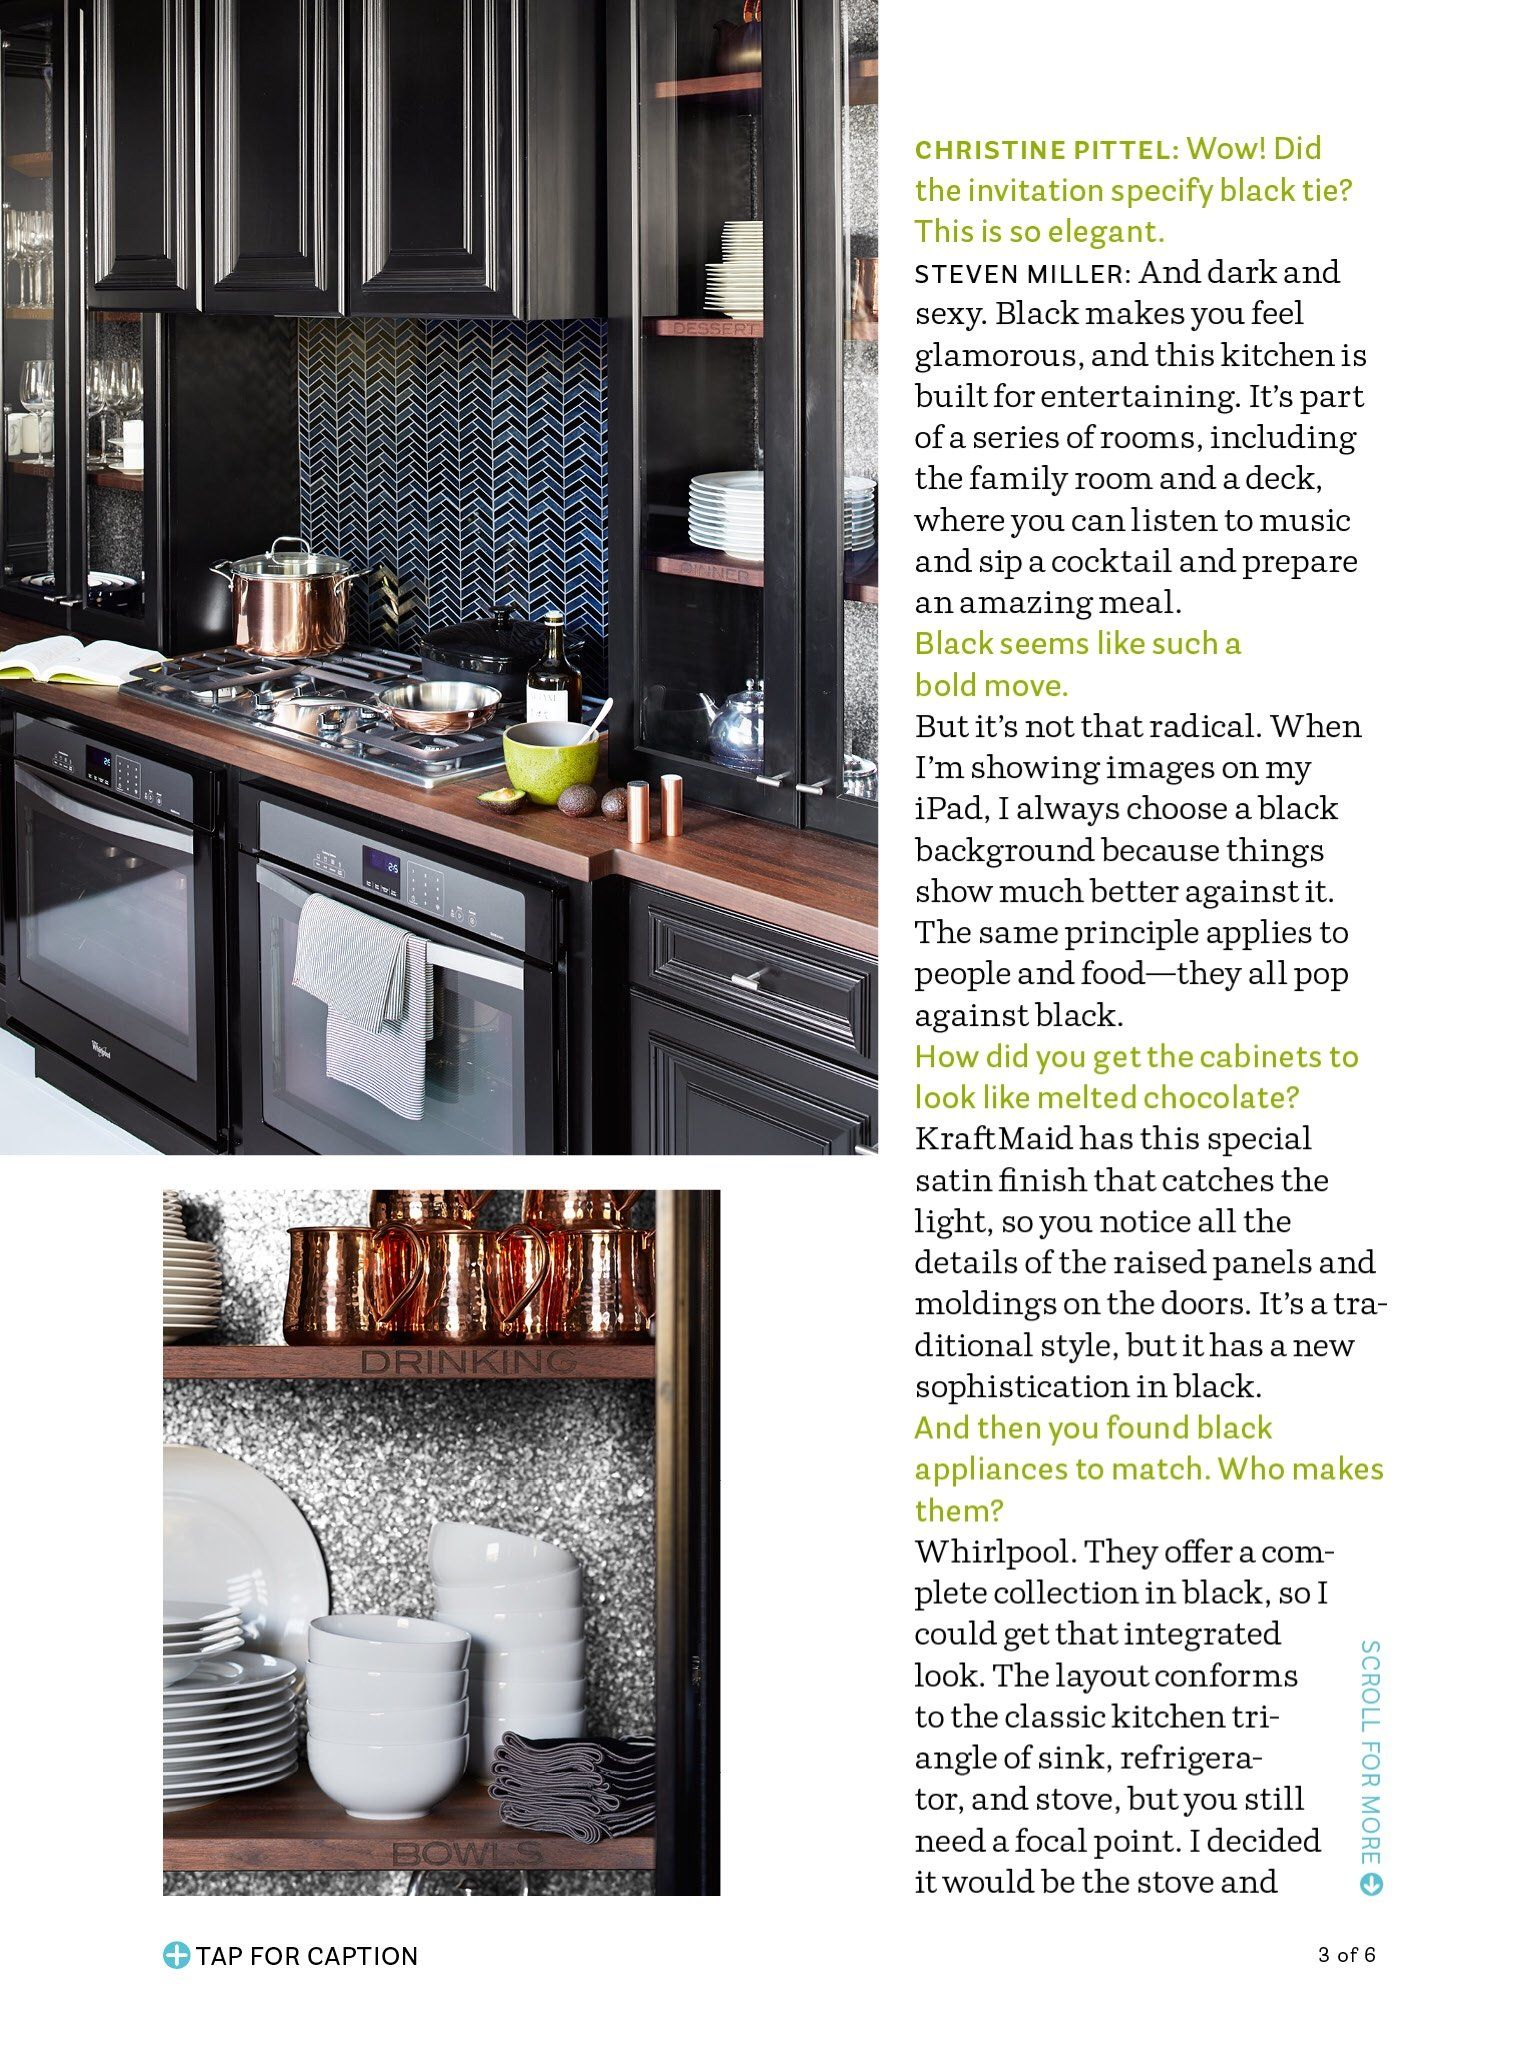 I saw this in the October 2014 issue of @HouseBeautiful.   http://bit.ly/1ySrLfl